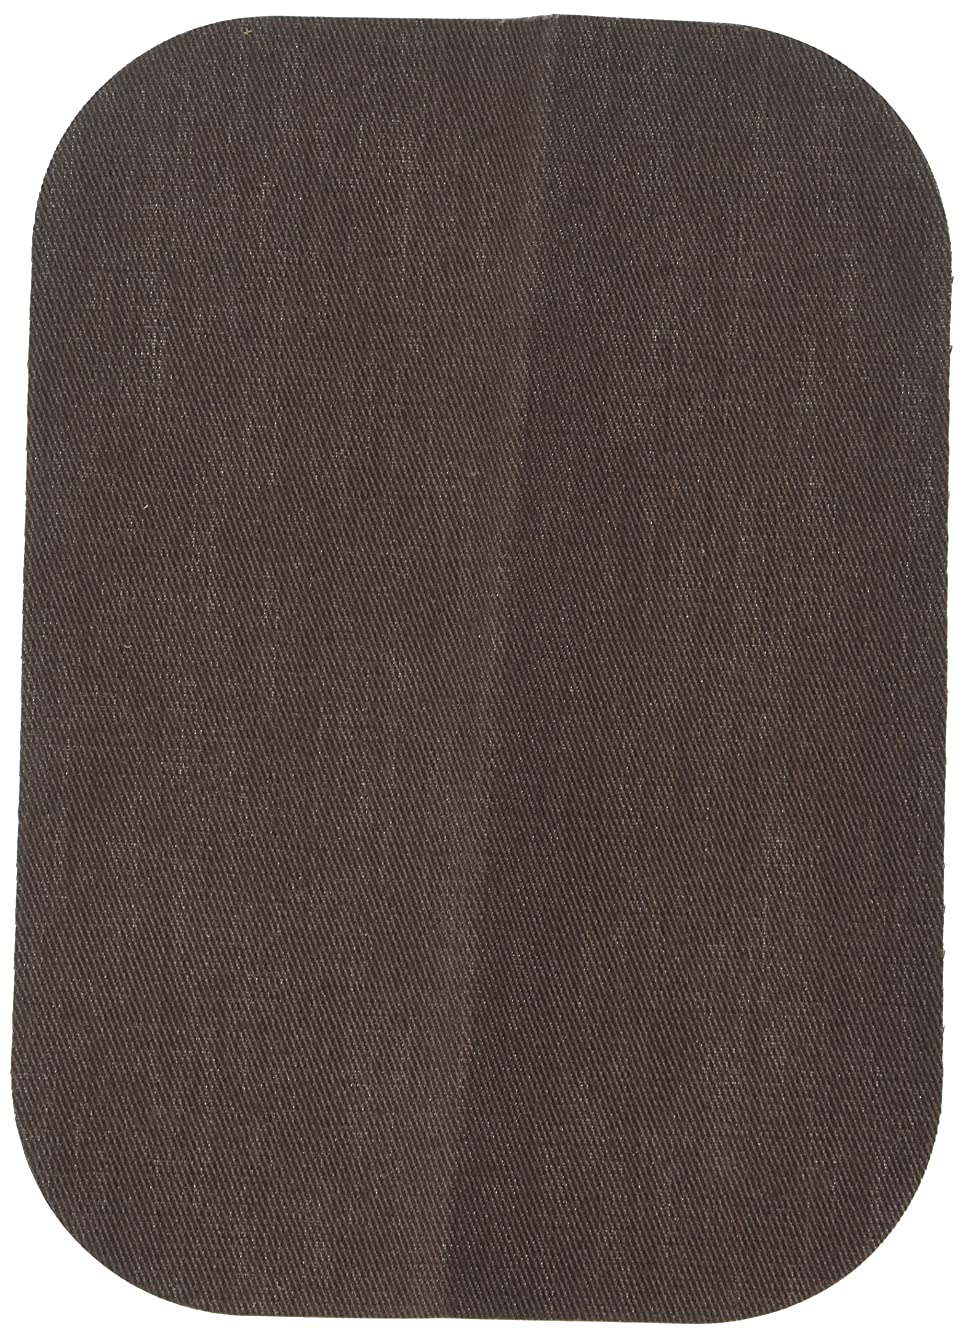 Wright Products Bondex Iron-On Patches 5